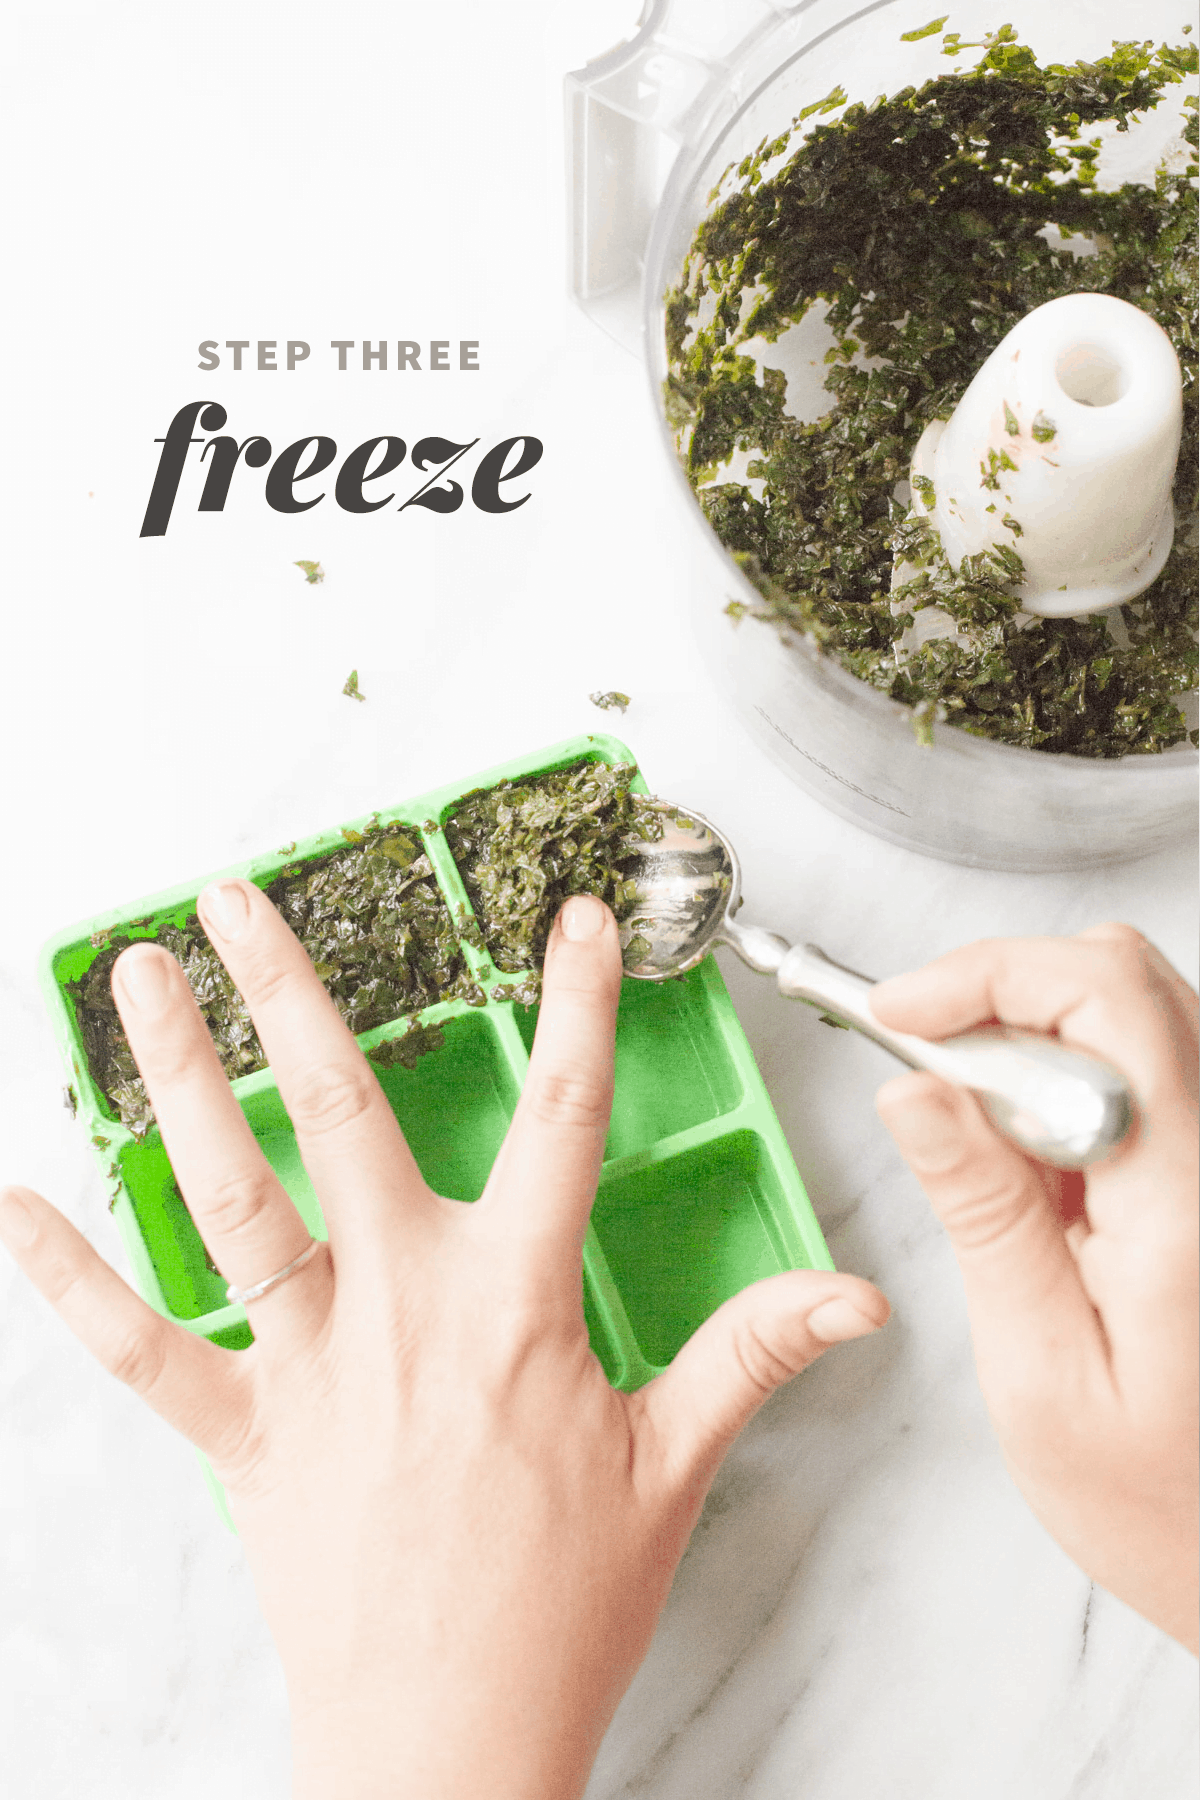 """Hands spoon fresh basil pureed with olive oil out of a food processor and into an herb freezing tray. A text overlay reads """"Step Three: Freeze."""""""